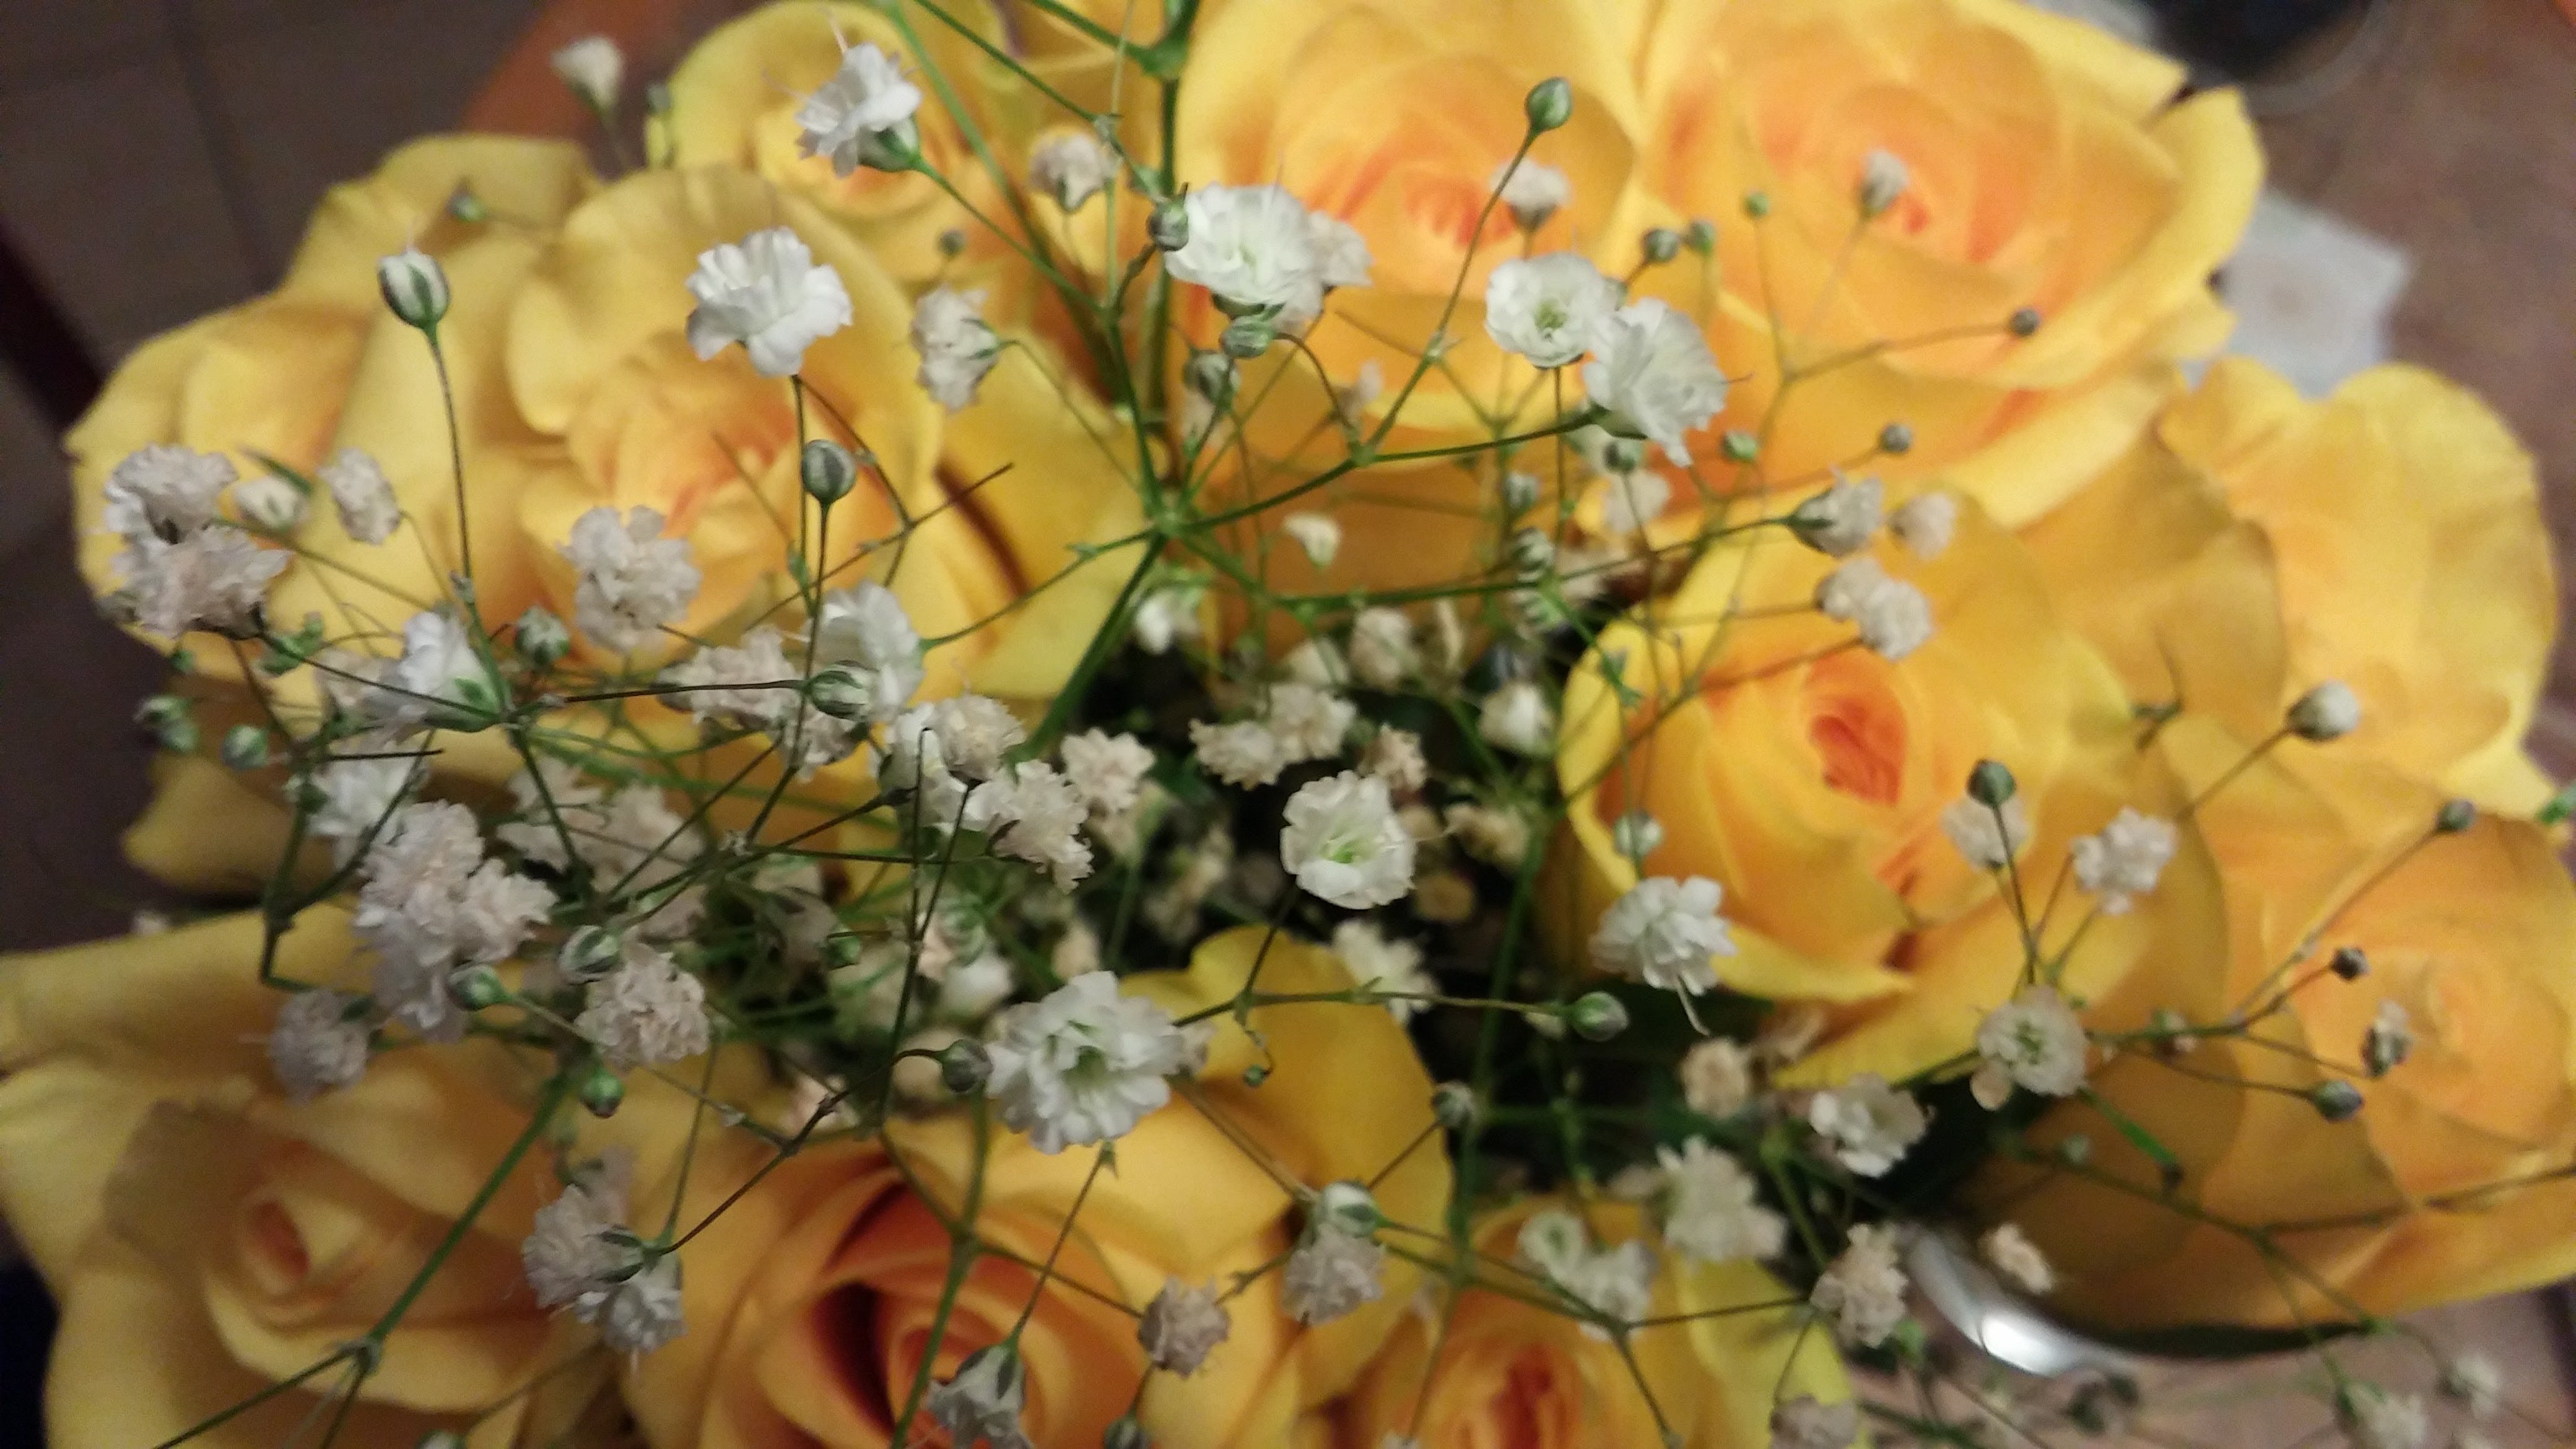 Free stock photo of roses, yellow roses